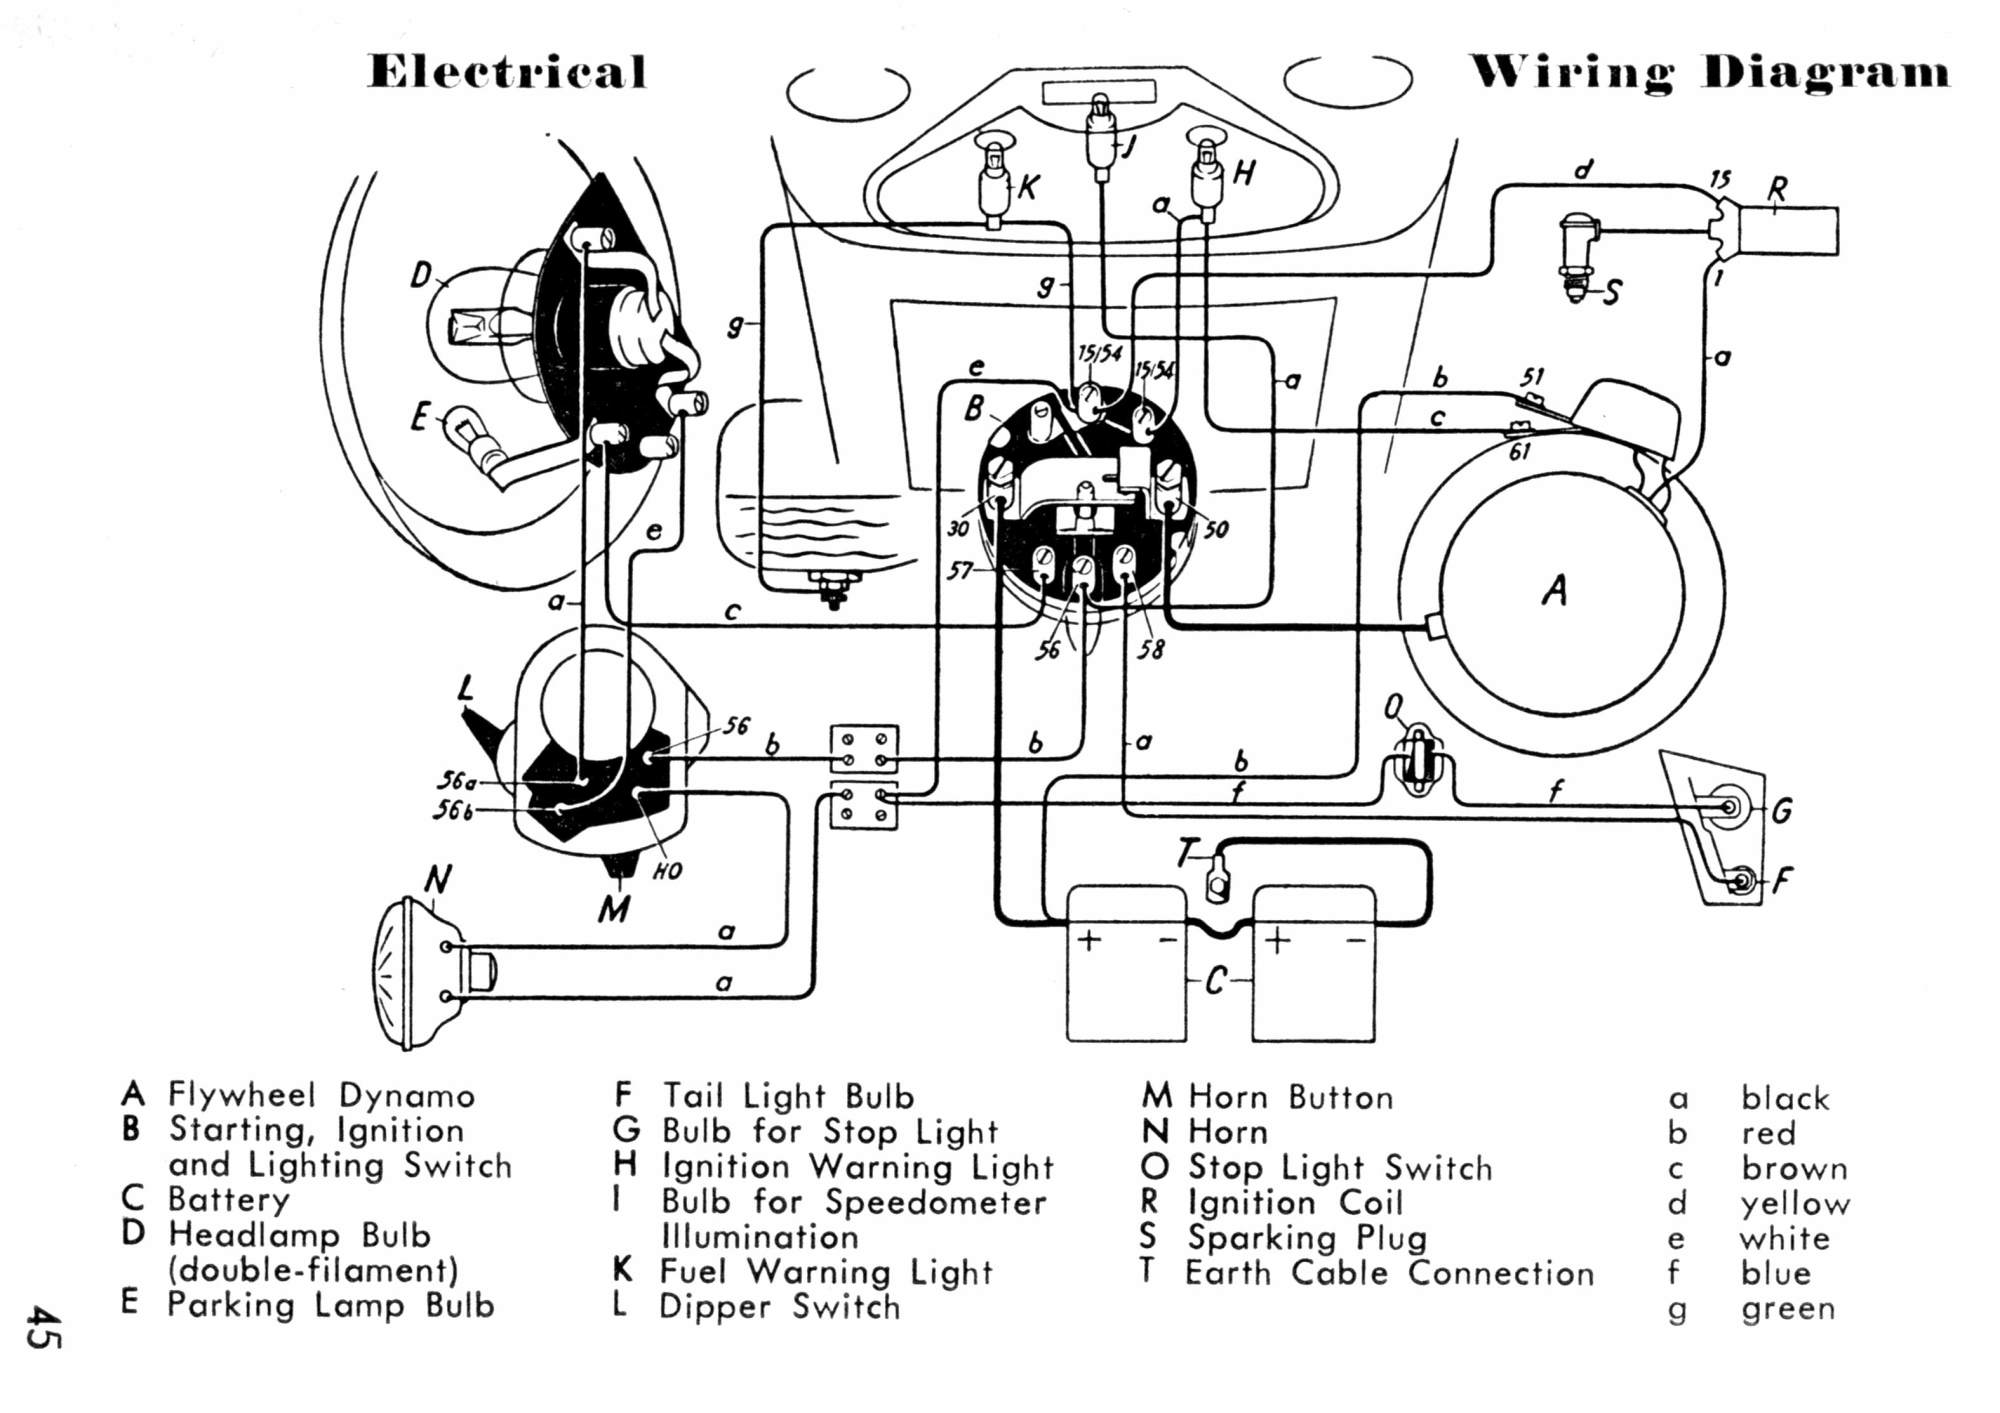 hight resolution of 150cc scooter engine diagram wiring diagram mega150cc 4 stroke engine diagram for honda metropolitan moped wiring